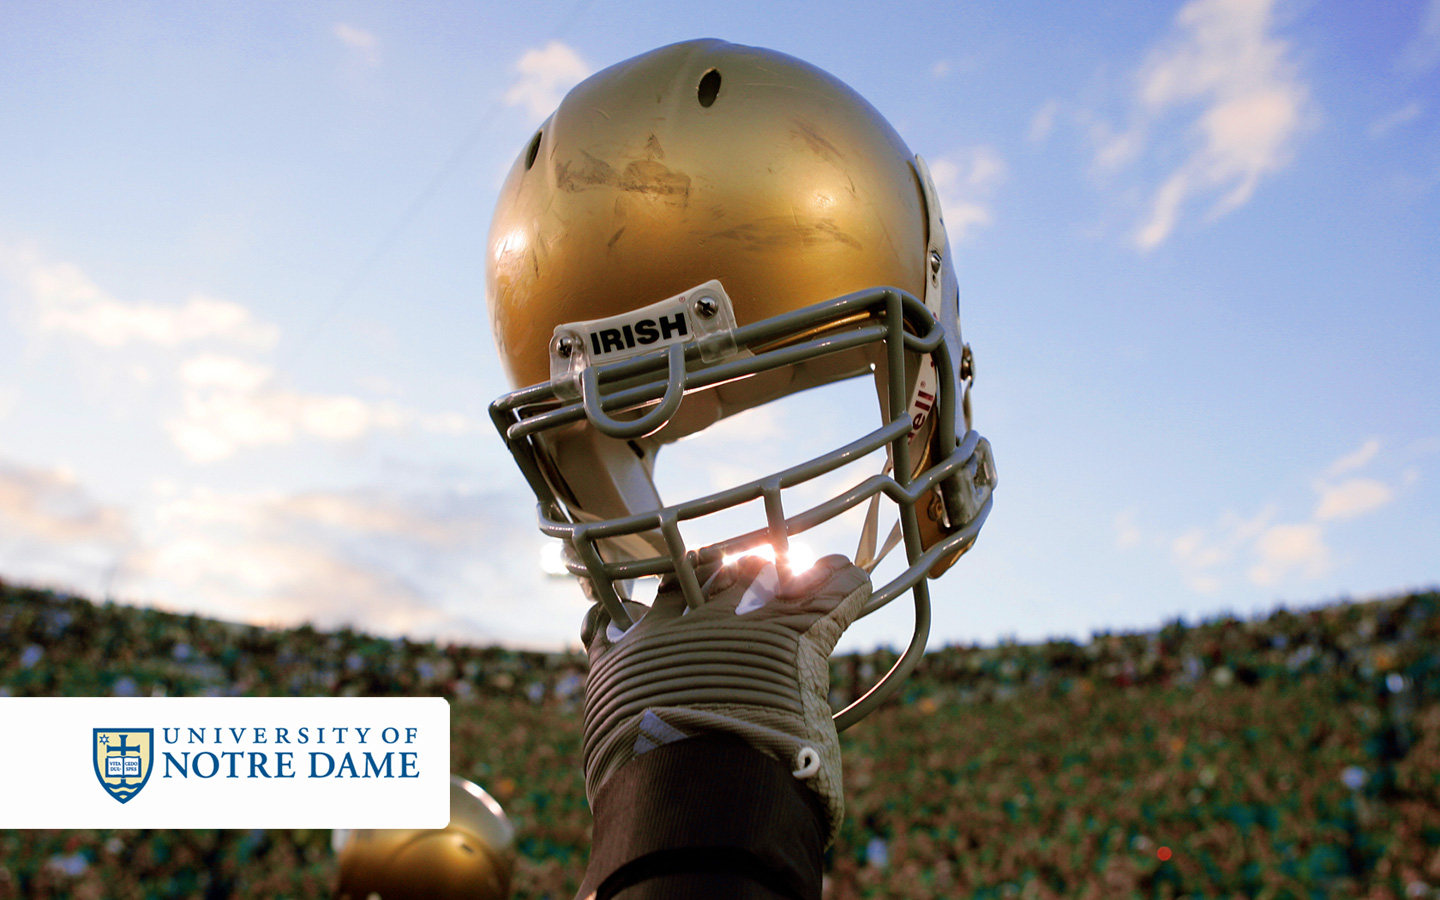 notre dame football wallpaper notre dame football Pictures Desktop 1440x900